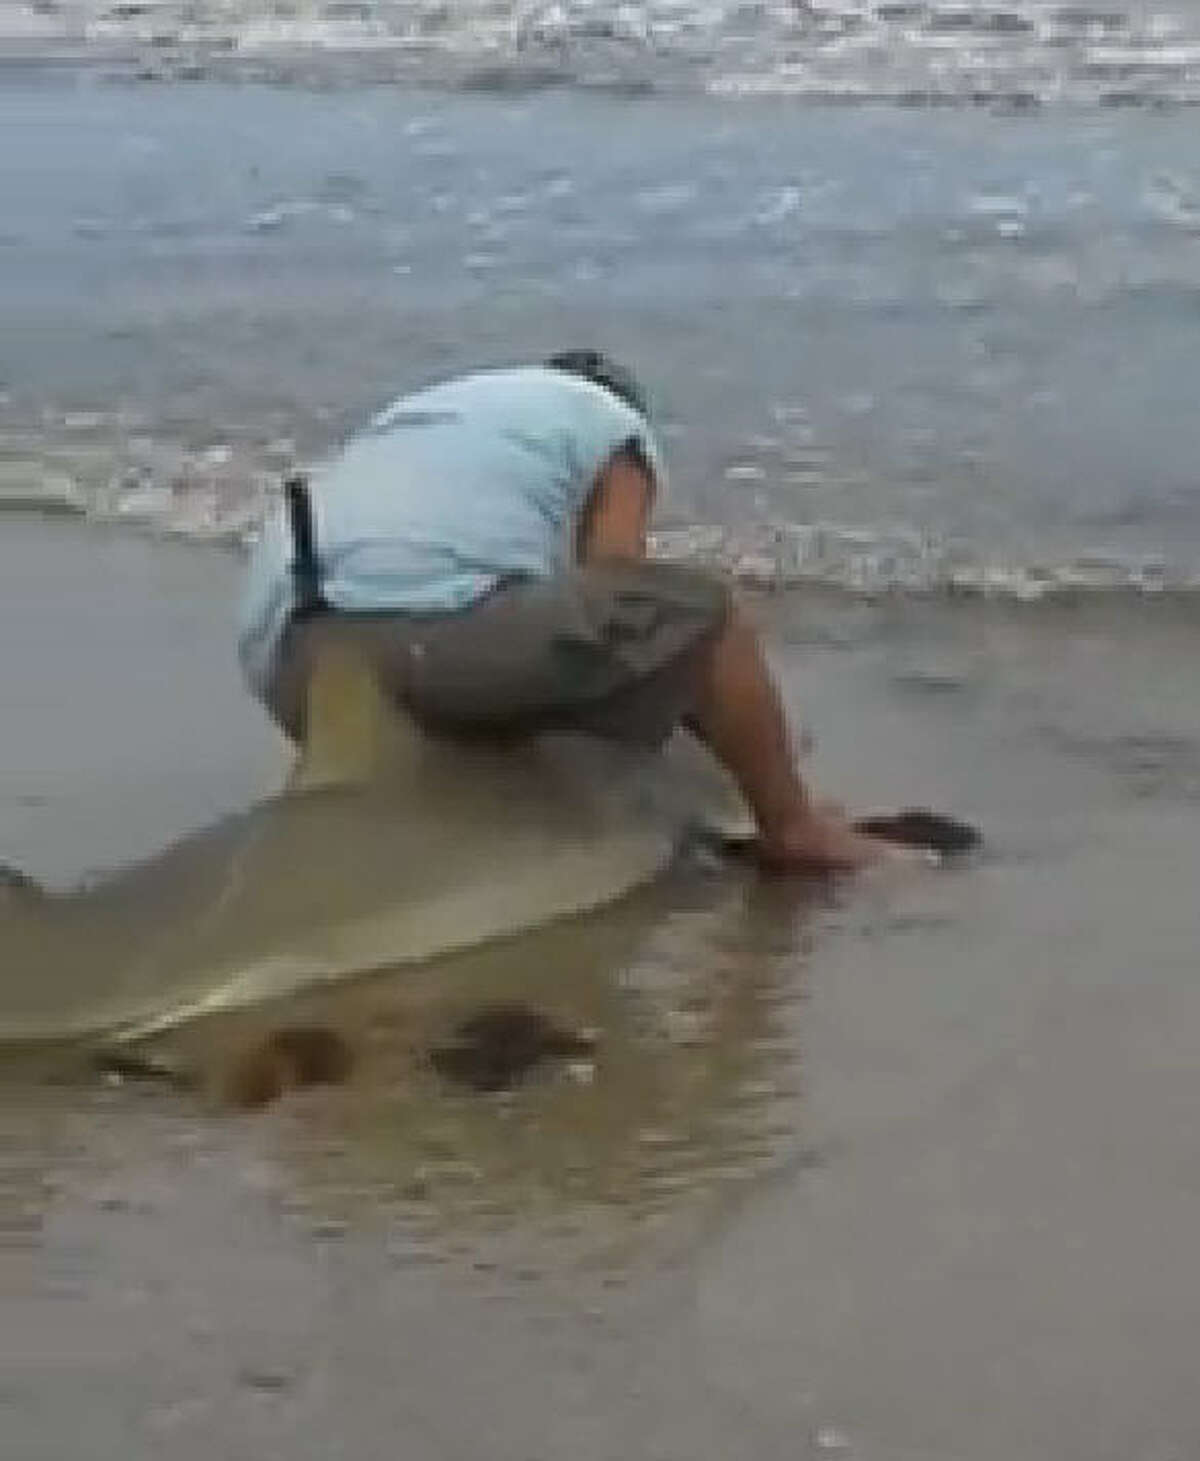 Fisherman Paul Lipinski, 50, from Cyrpess, unhooks the shark and drags it back out into the Gulf in a video posted on Facebook and located at Galveston Beach.